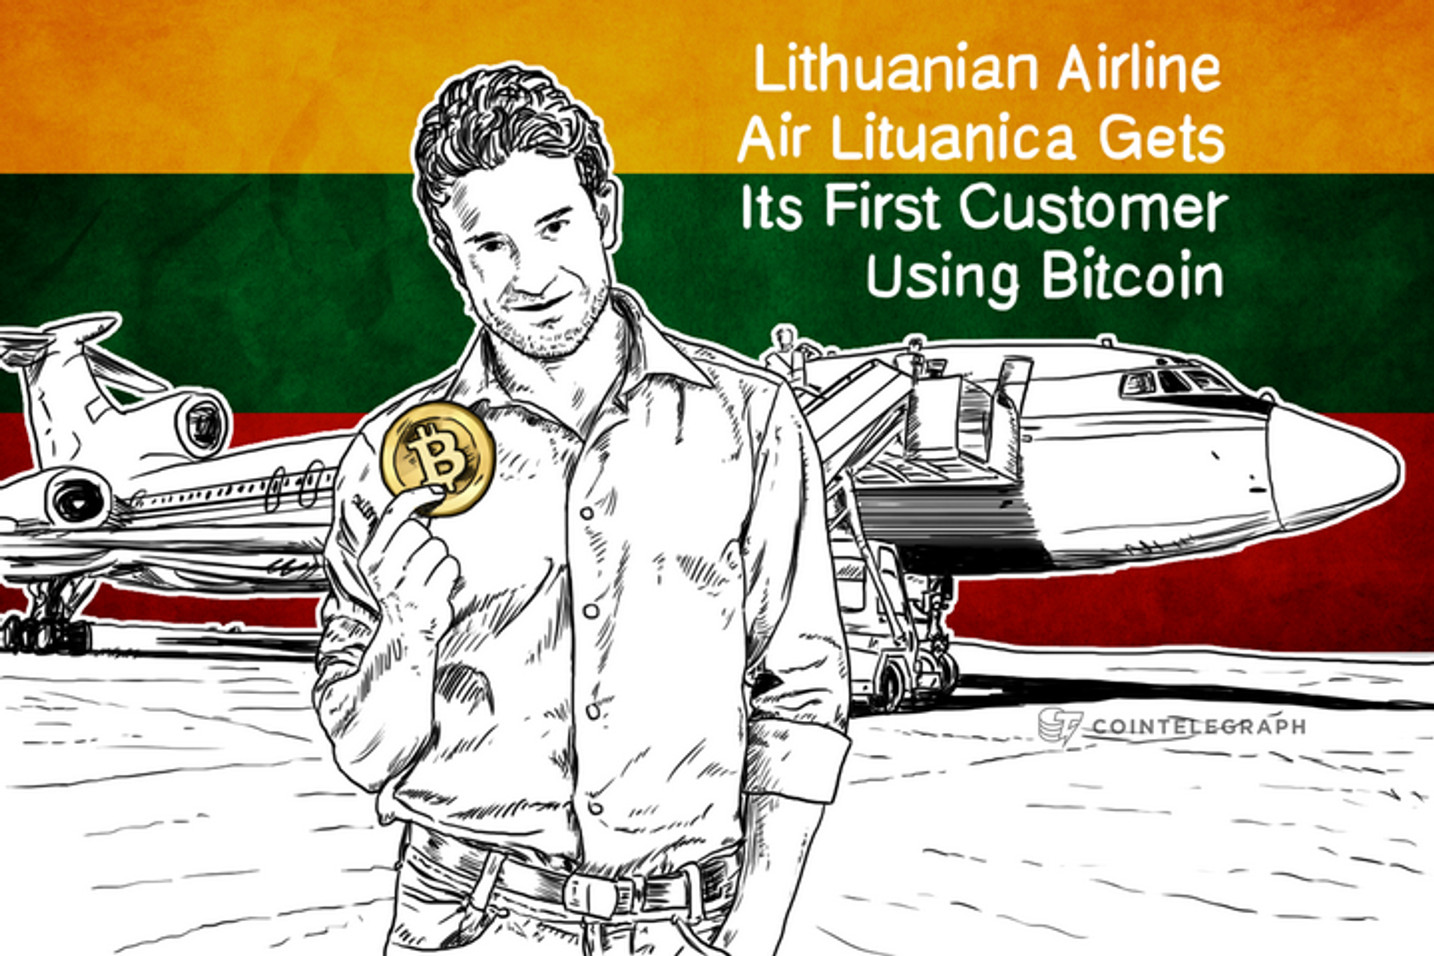 Lithuanian Airline Air Lituanica Gets Its First Customer Using Bitcoin